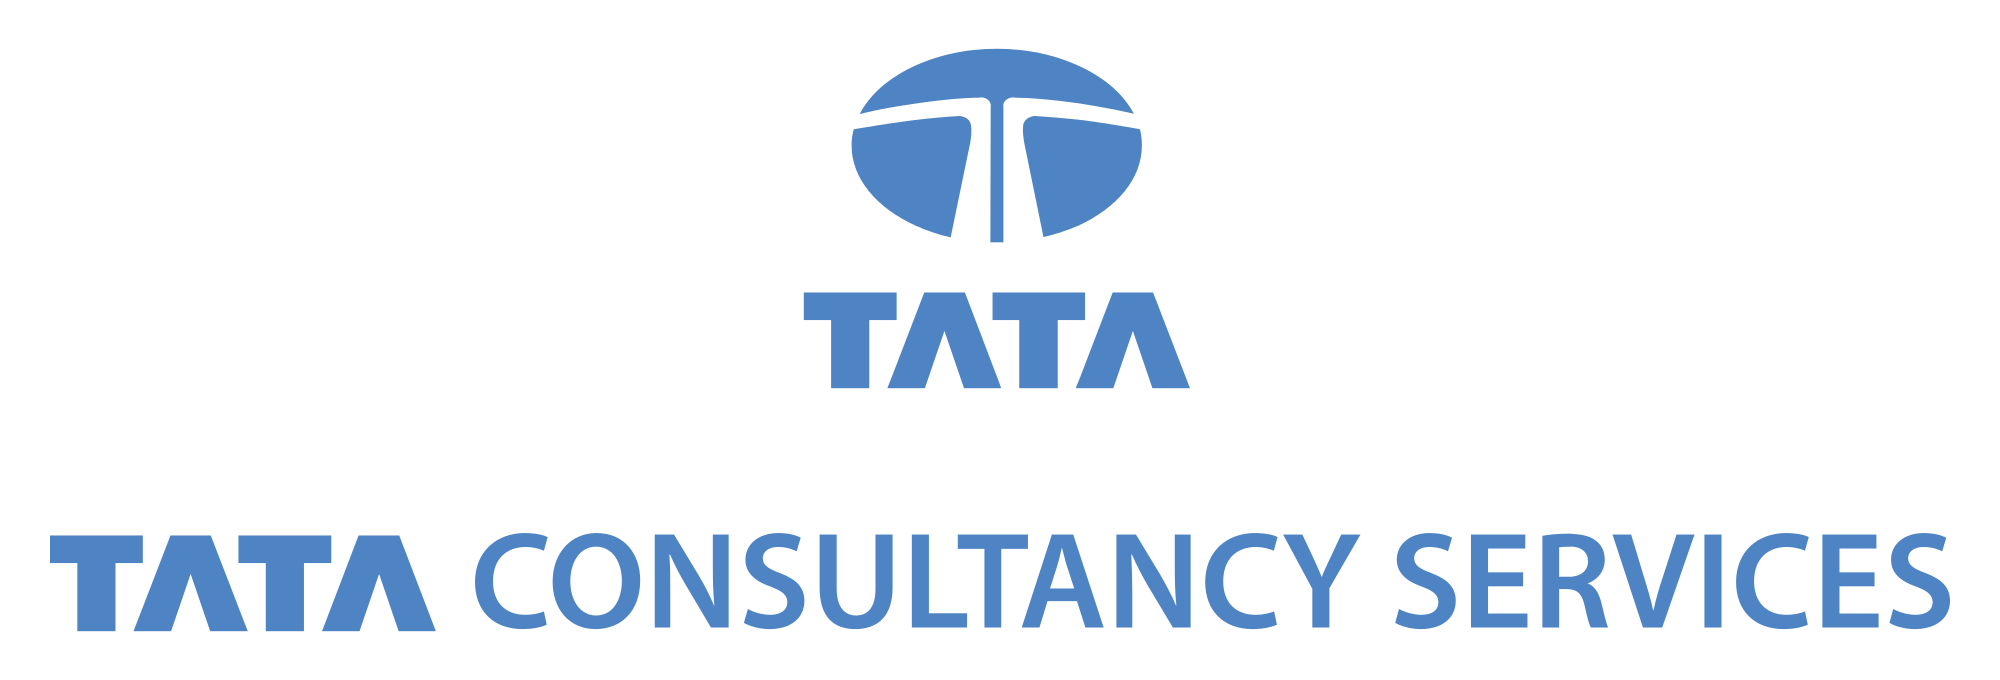 Tata Consultancy Services Logo Blue